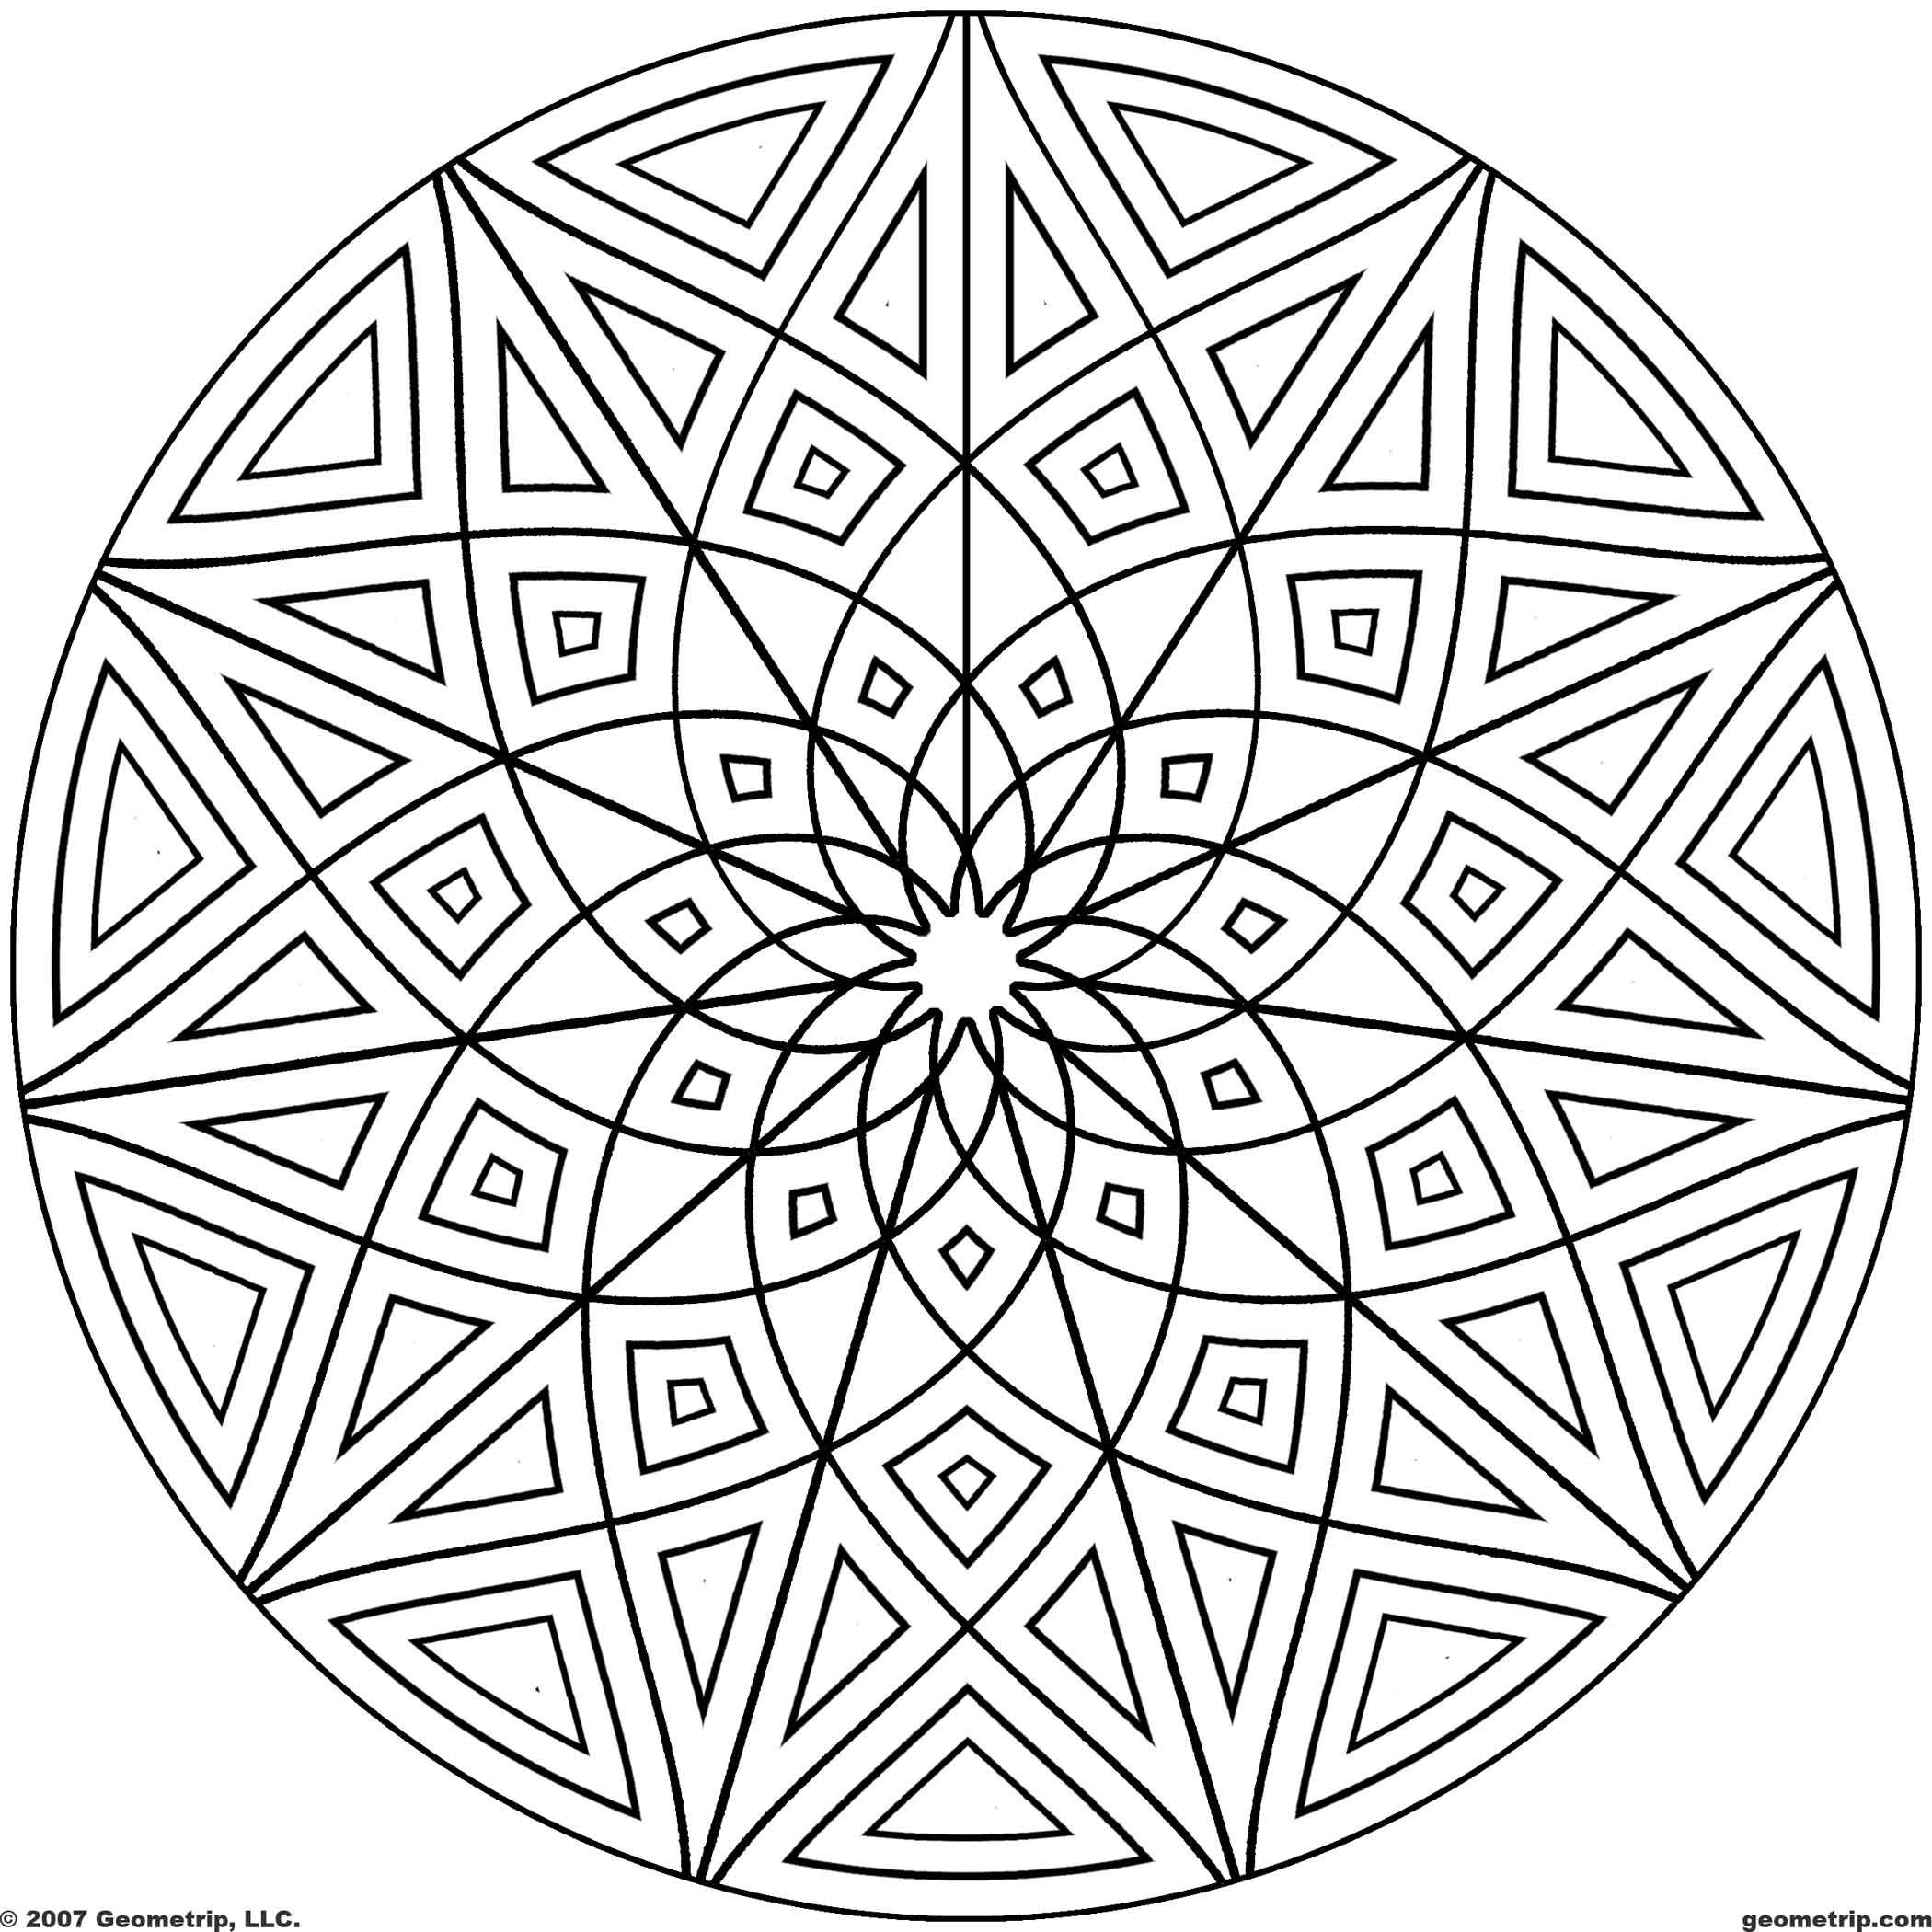 Geometrip Com Free Geometric Coloring Designs Circles Geometric Patterns Coloring Geometric Coloring Pages Designs Coloring Books